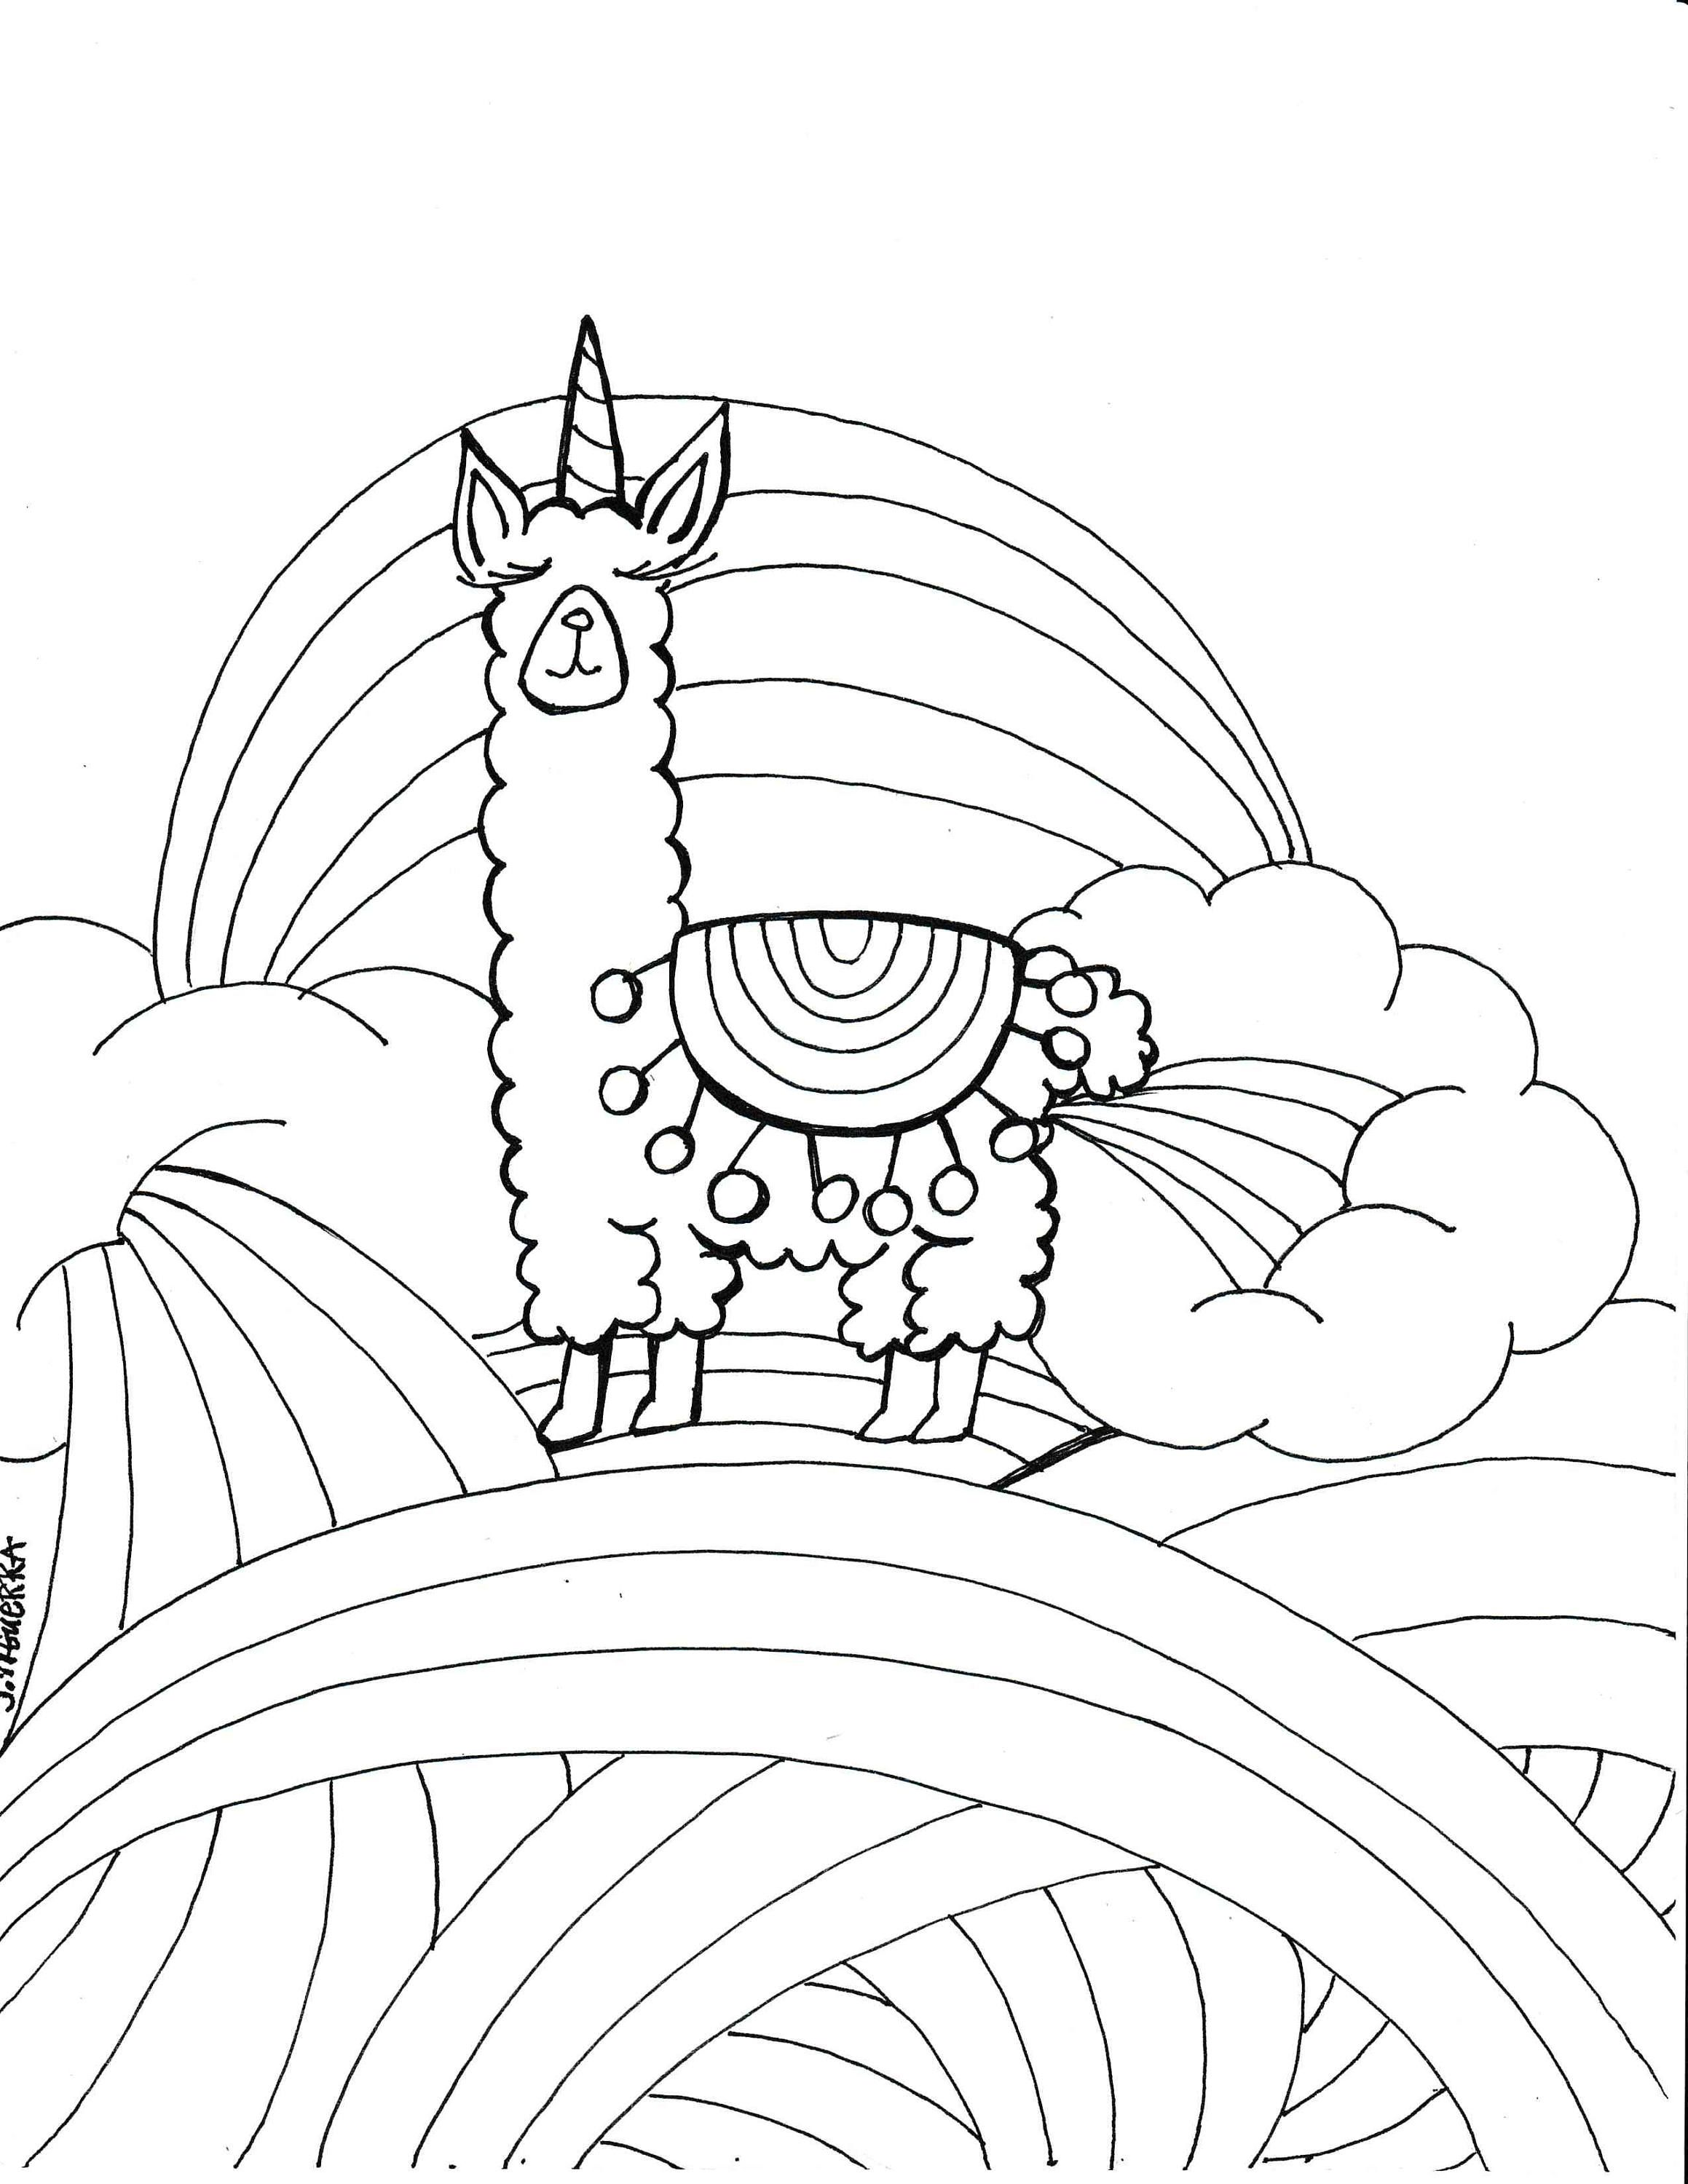 Llamacorn coloring page pdf printable art by journalingart on etsy